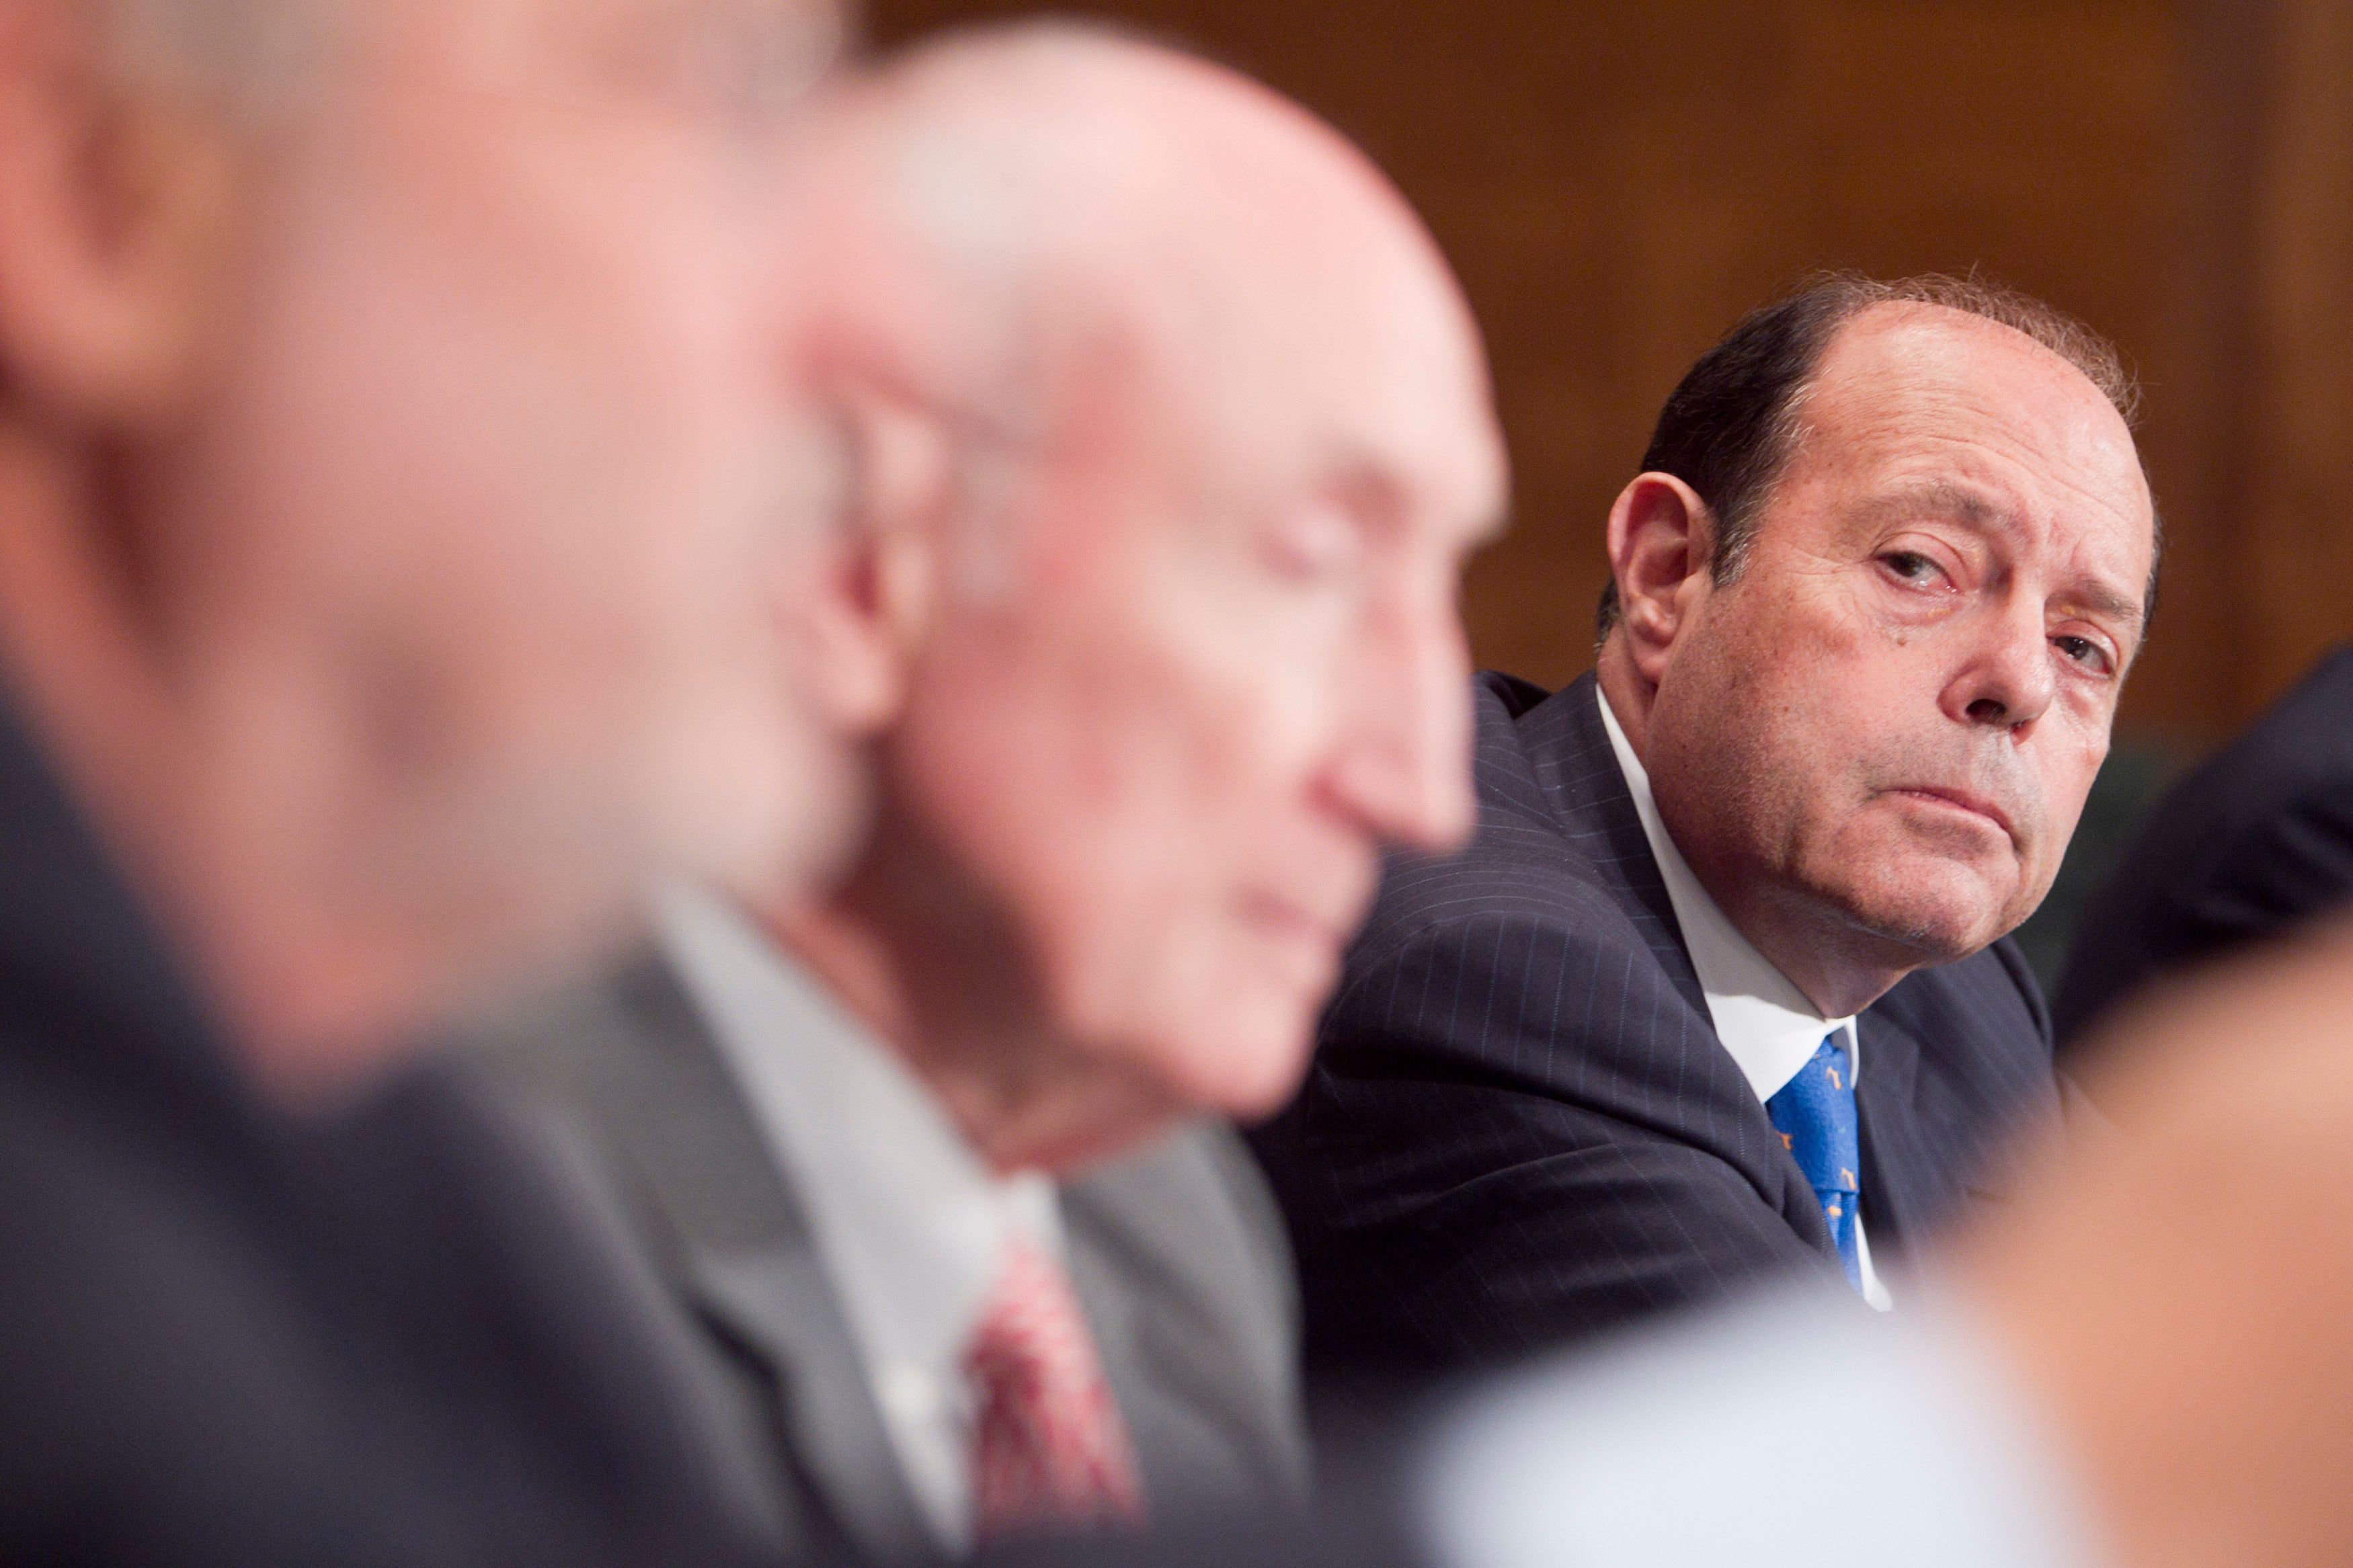 Eugene Ludwig, chief executive officer of Promontory Financial Group LLC, right, and Edward Kane, professor of finance at Boston College, listen to Joseph Stiglitz, Nobel prize-winning economist and professor of economics at Columbia University, during a Senate Banking Subcommittee on Financial Institutions in Washington, D.C., U.S., on Wednesday, Aug. 3, 2011. The hearing today was entitled, 'Debt Financing in the Domestic Financial Sector.' Photographer: Andrew Harrer/Bloomberg via Getty Images